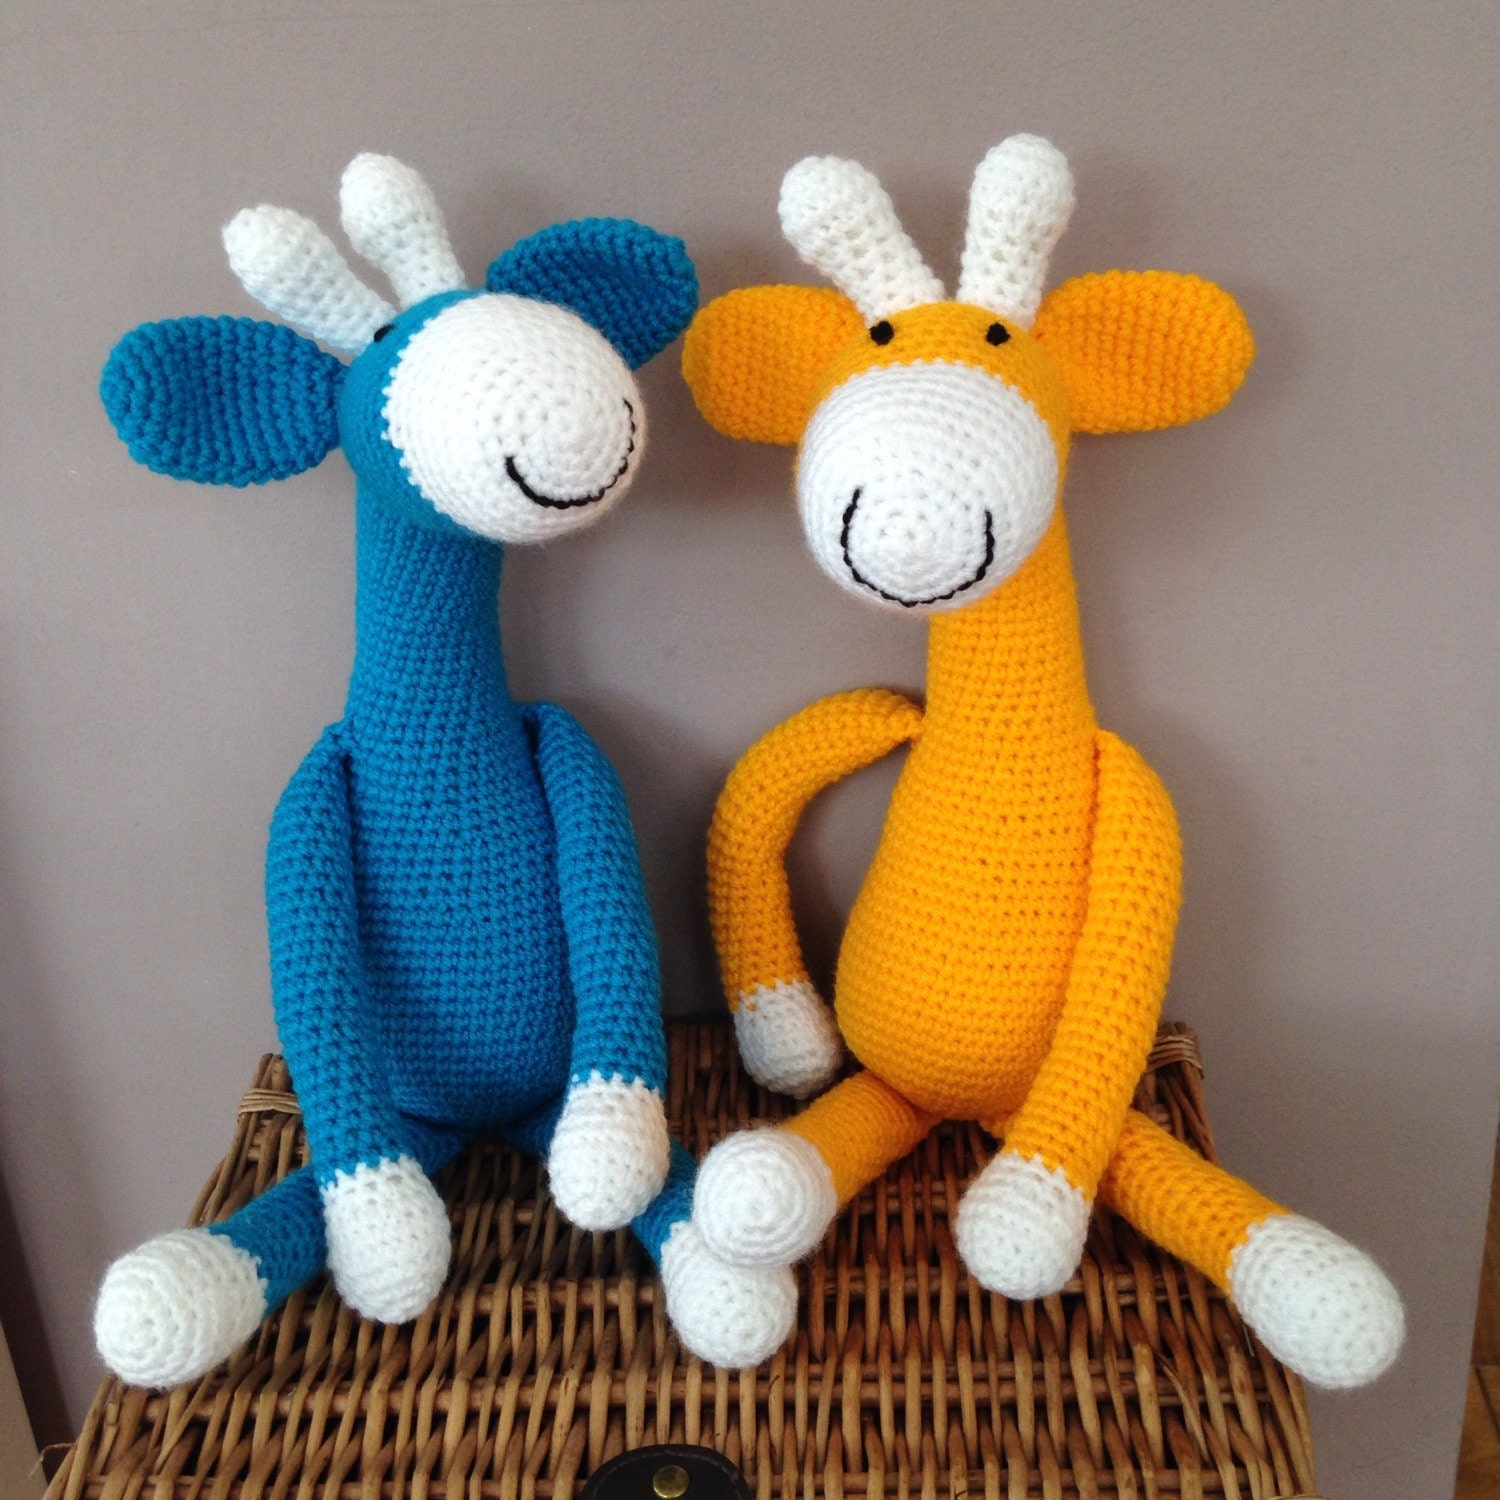 Handmade Giraffe toy crochet toy toddlers toy baby gift